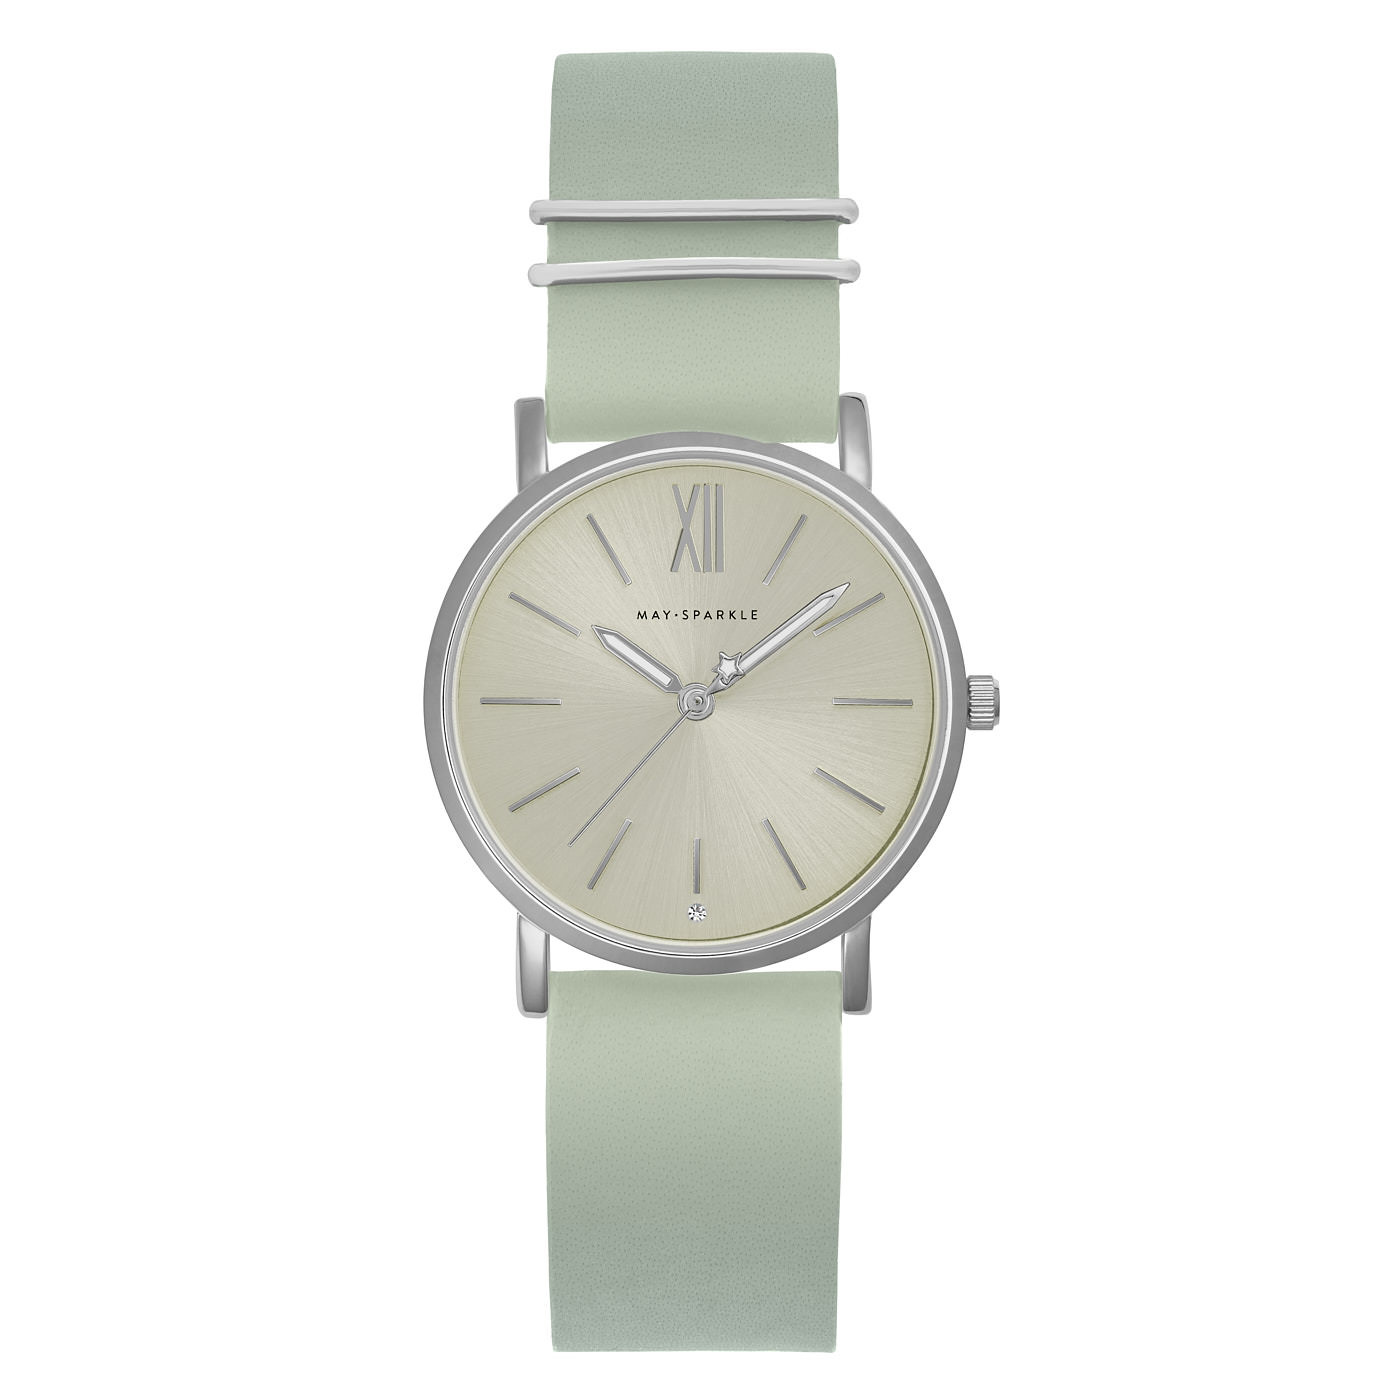 May Sparkle Classy Diva Misty grey watch